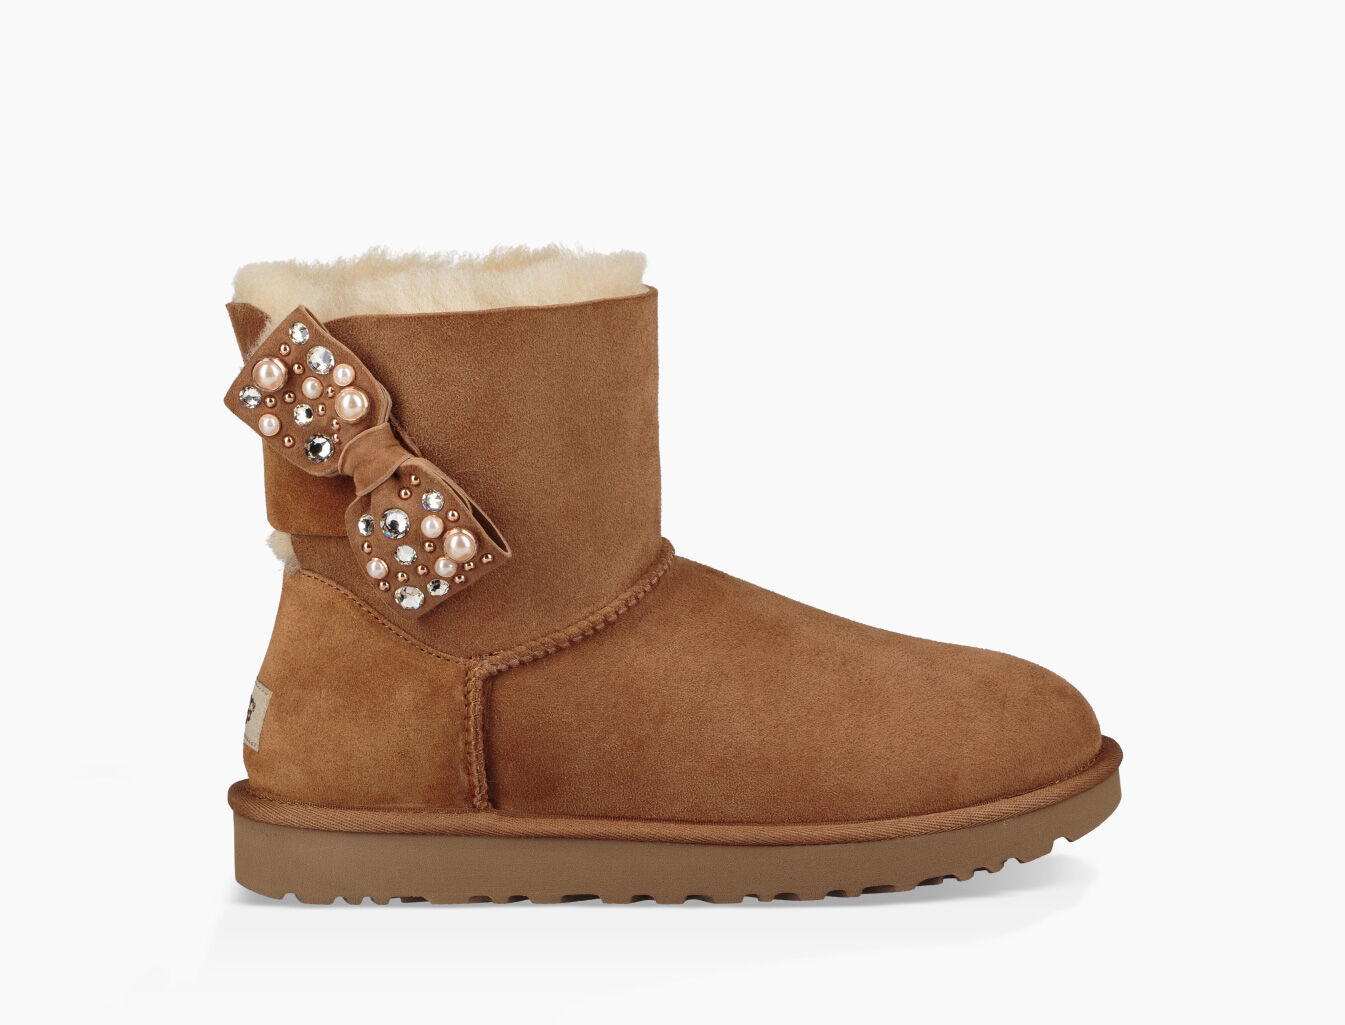 best price on uggs bailey bow